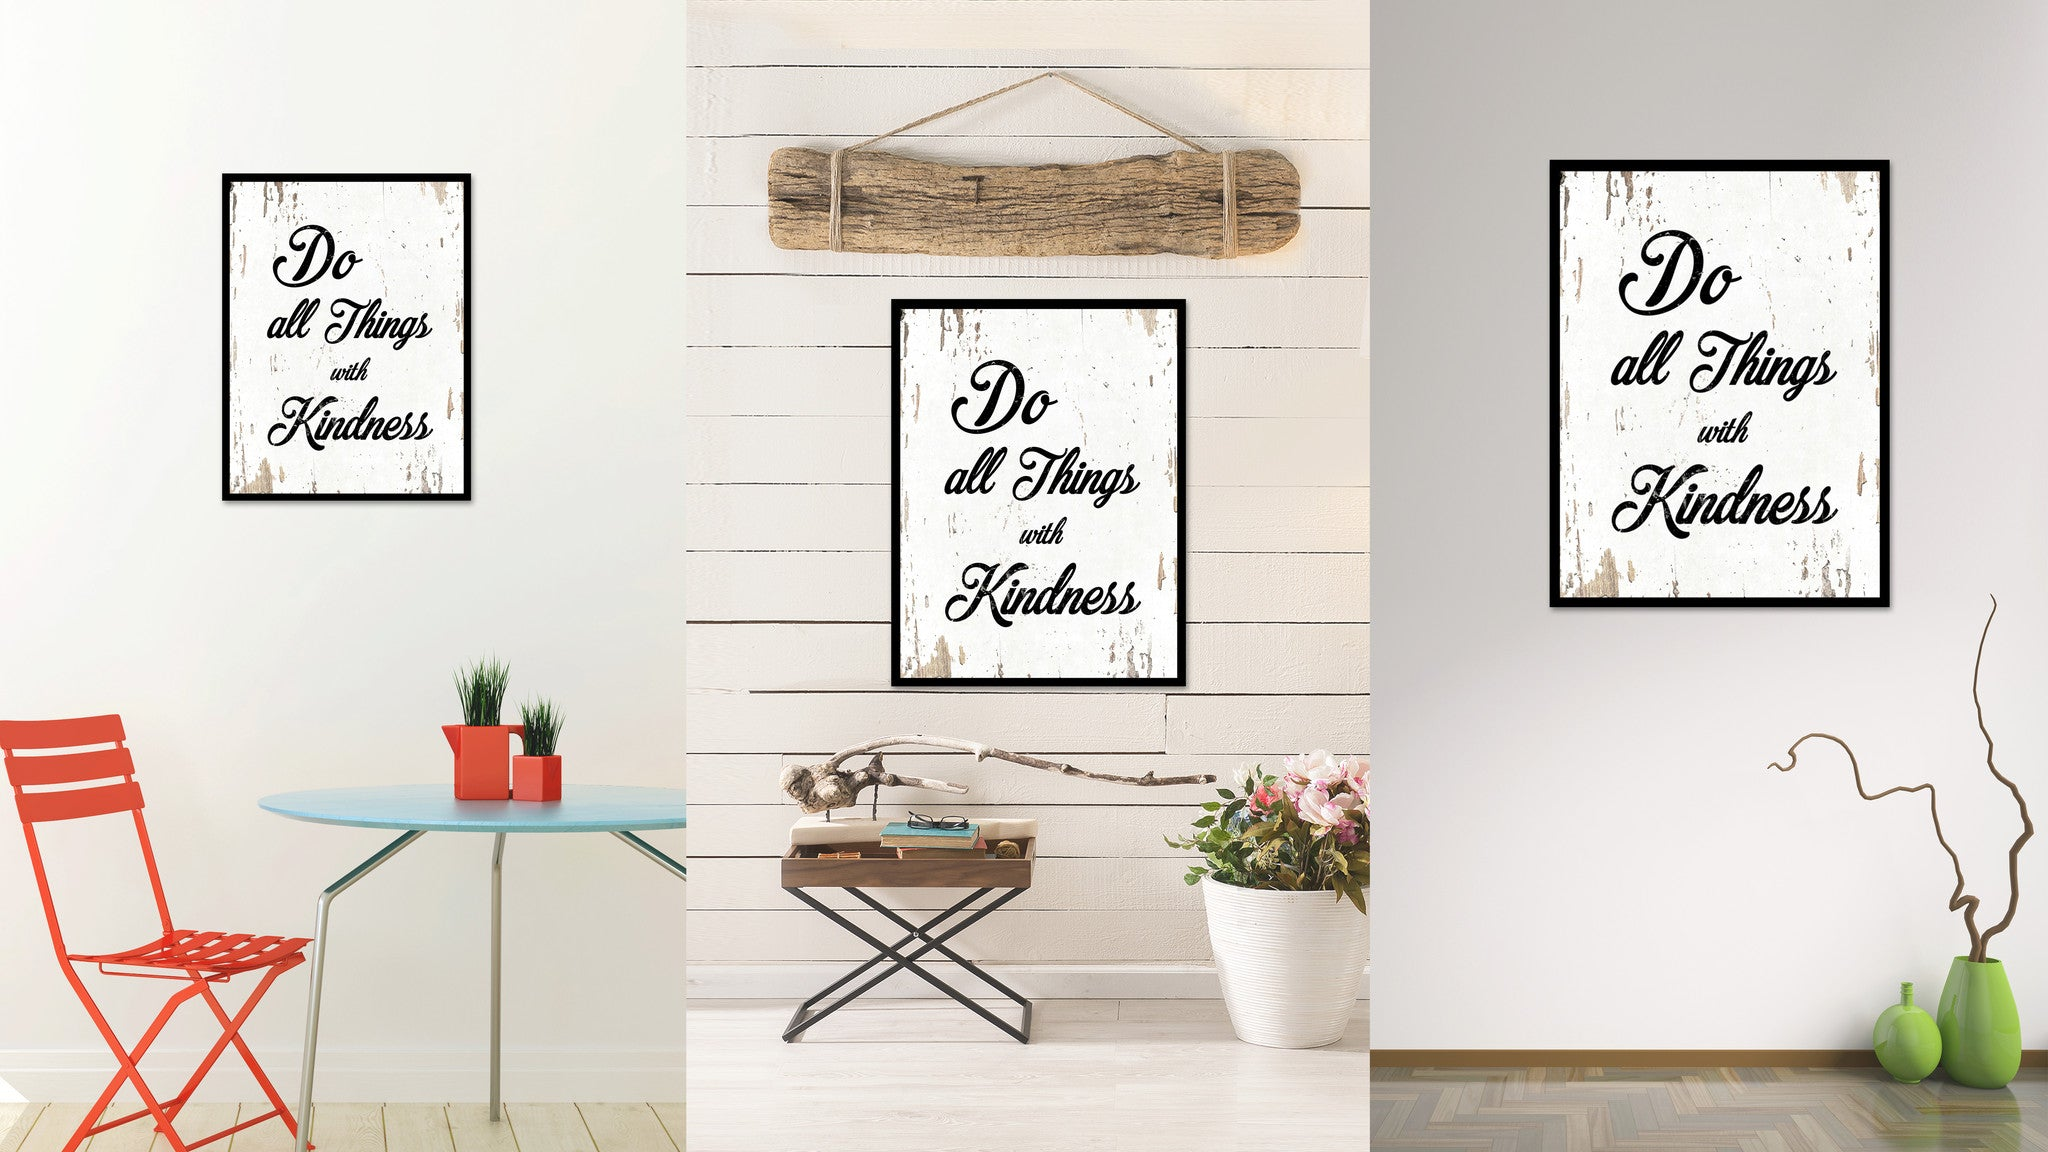 Do All Things With Kindness Motivation Quote Saying Home Decor Wall Art Gift Ideas 111712